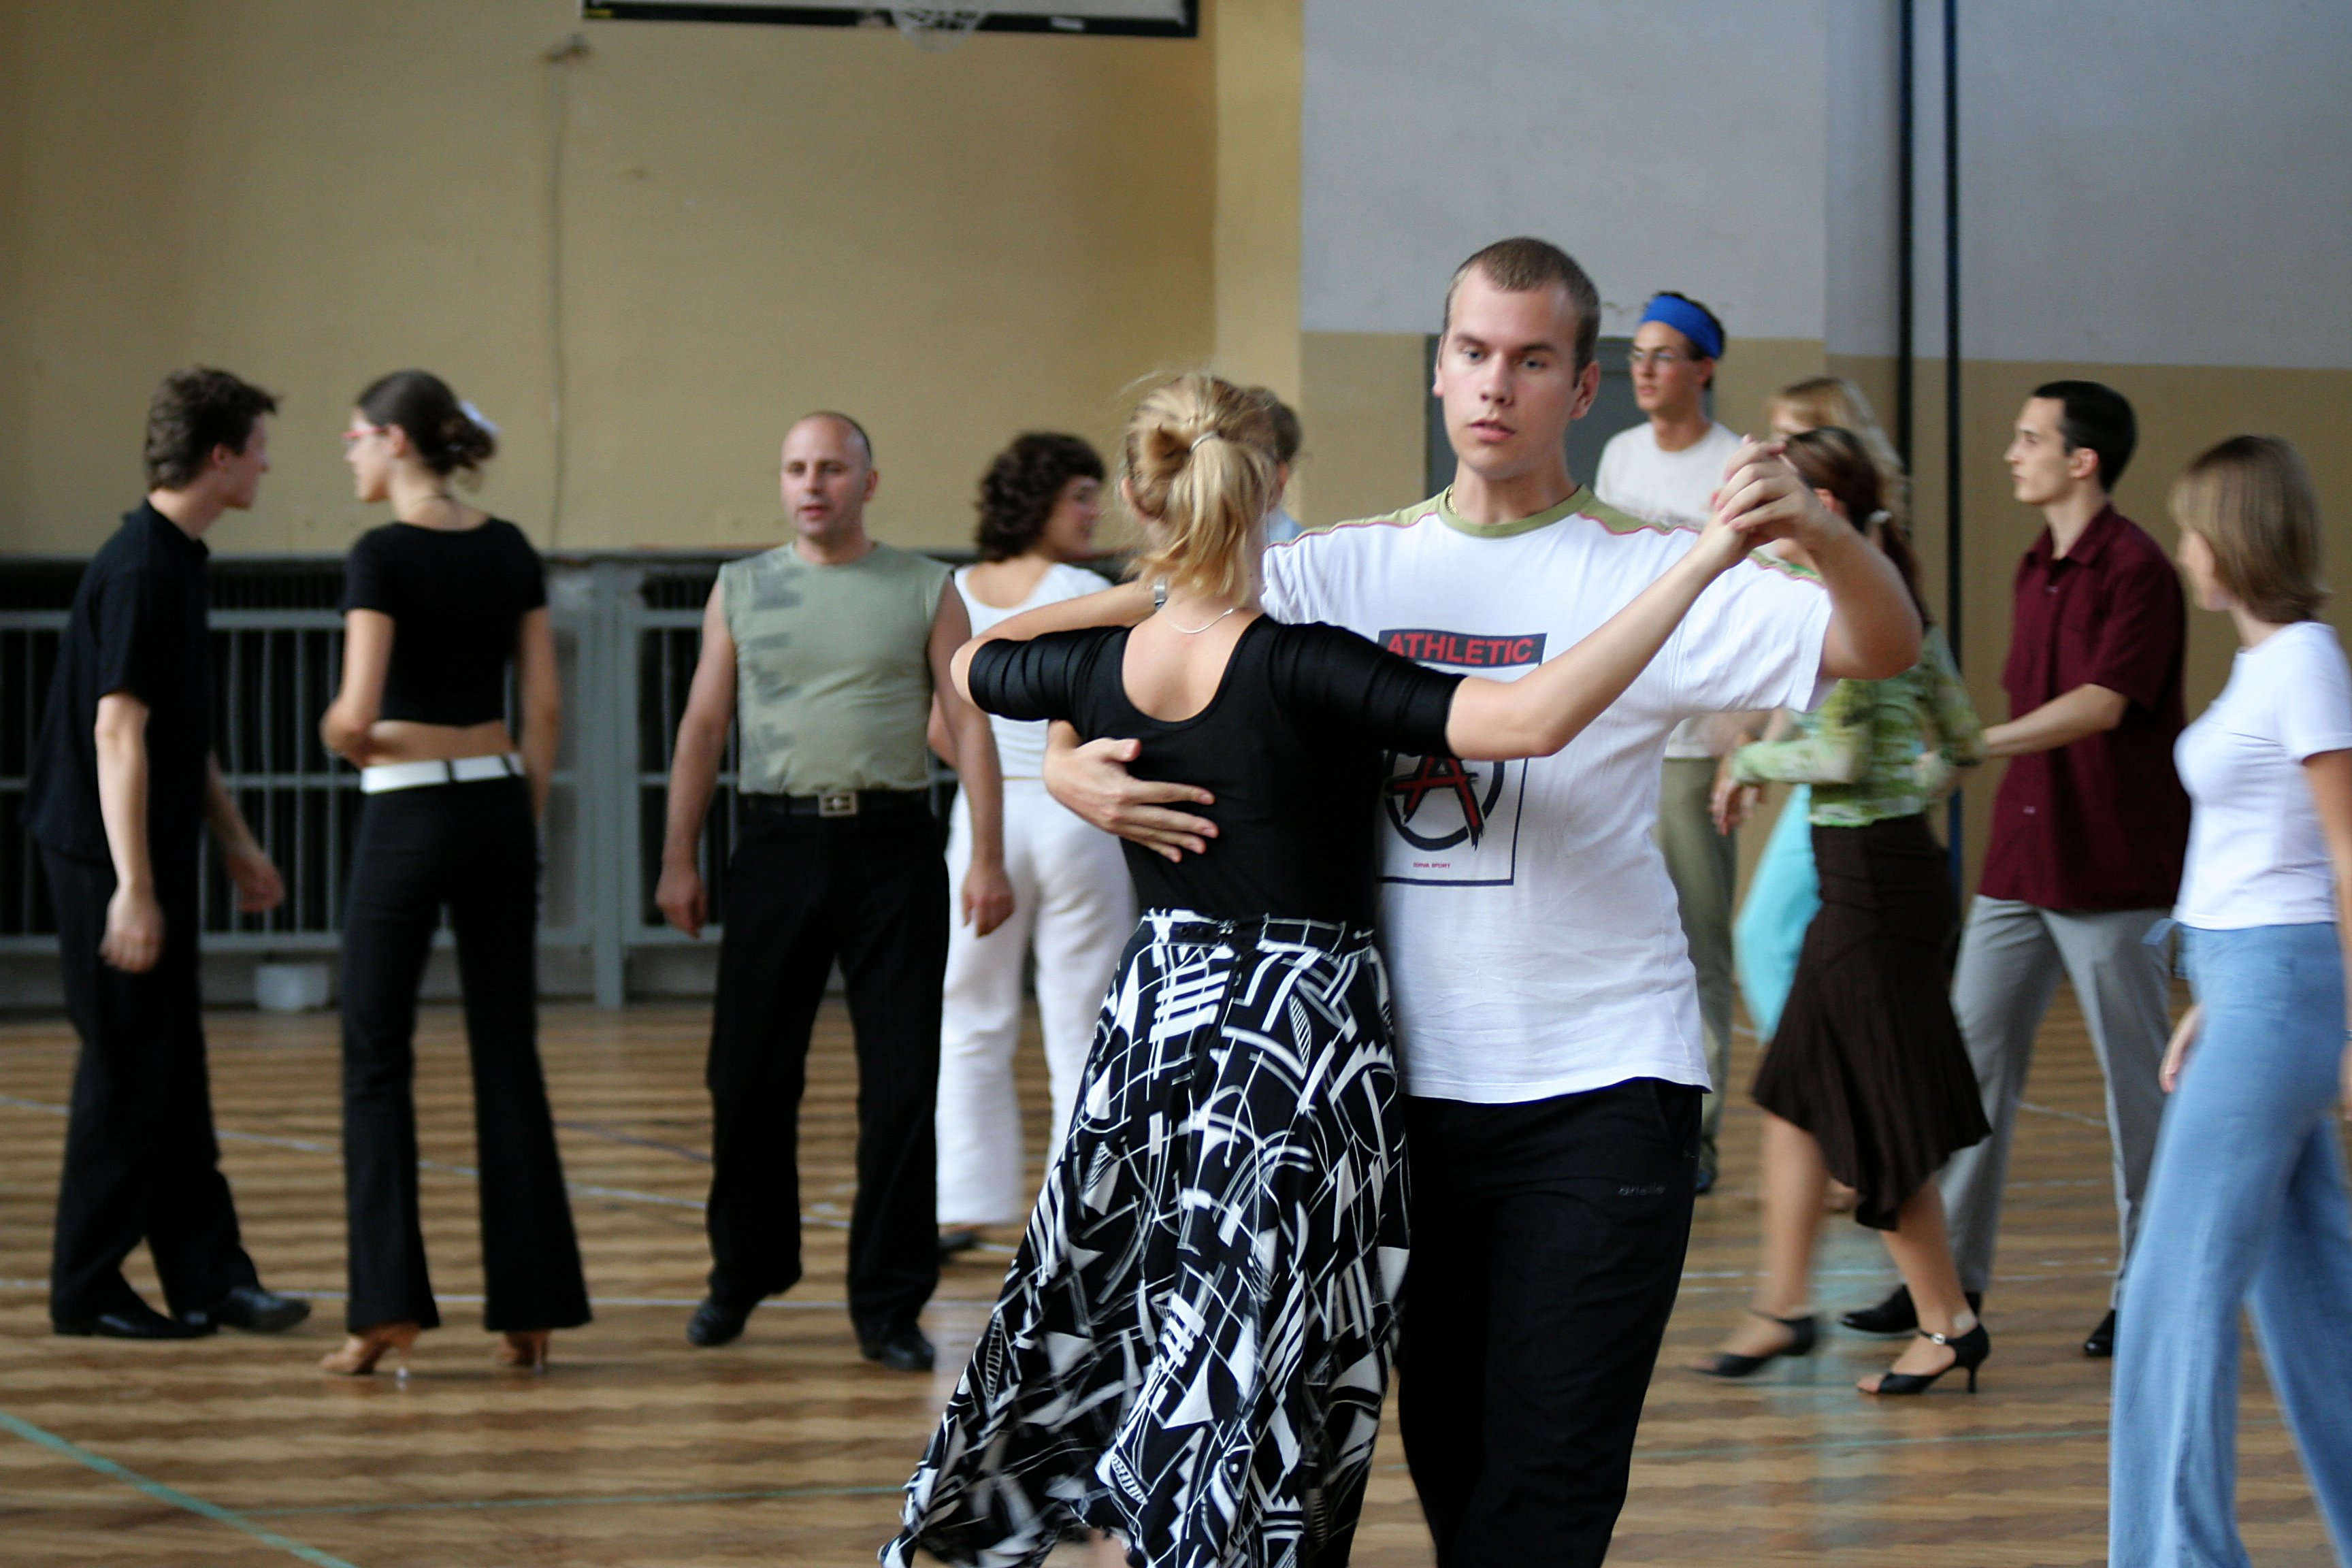 strictly ballroom writework ballroom dance lesson